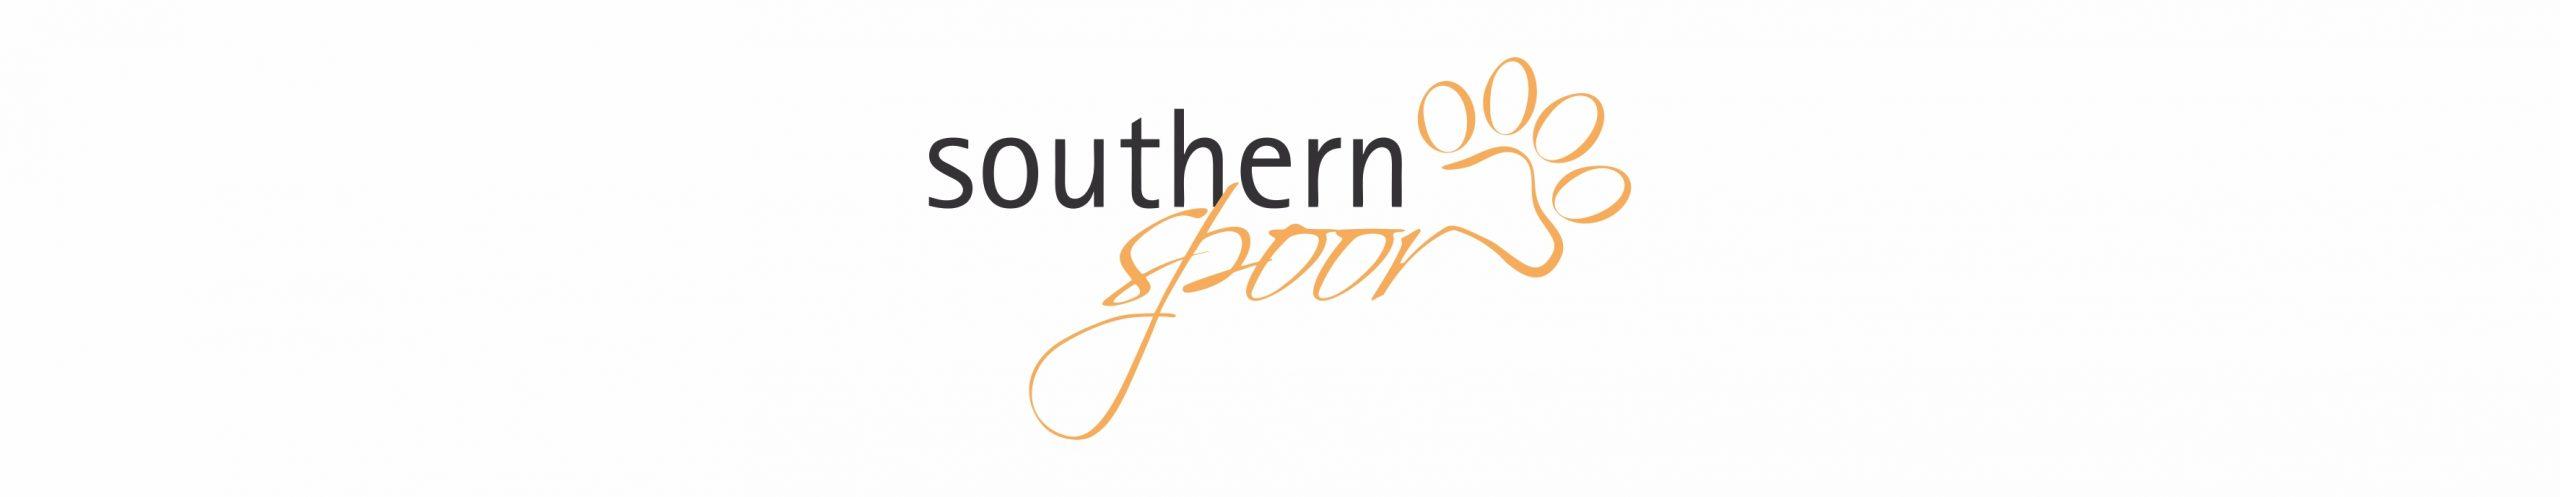 Southern Spoor